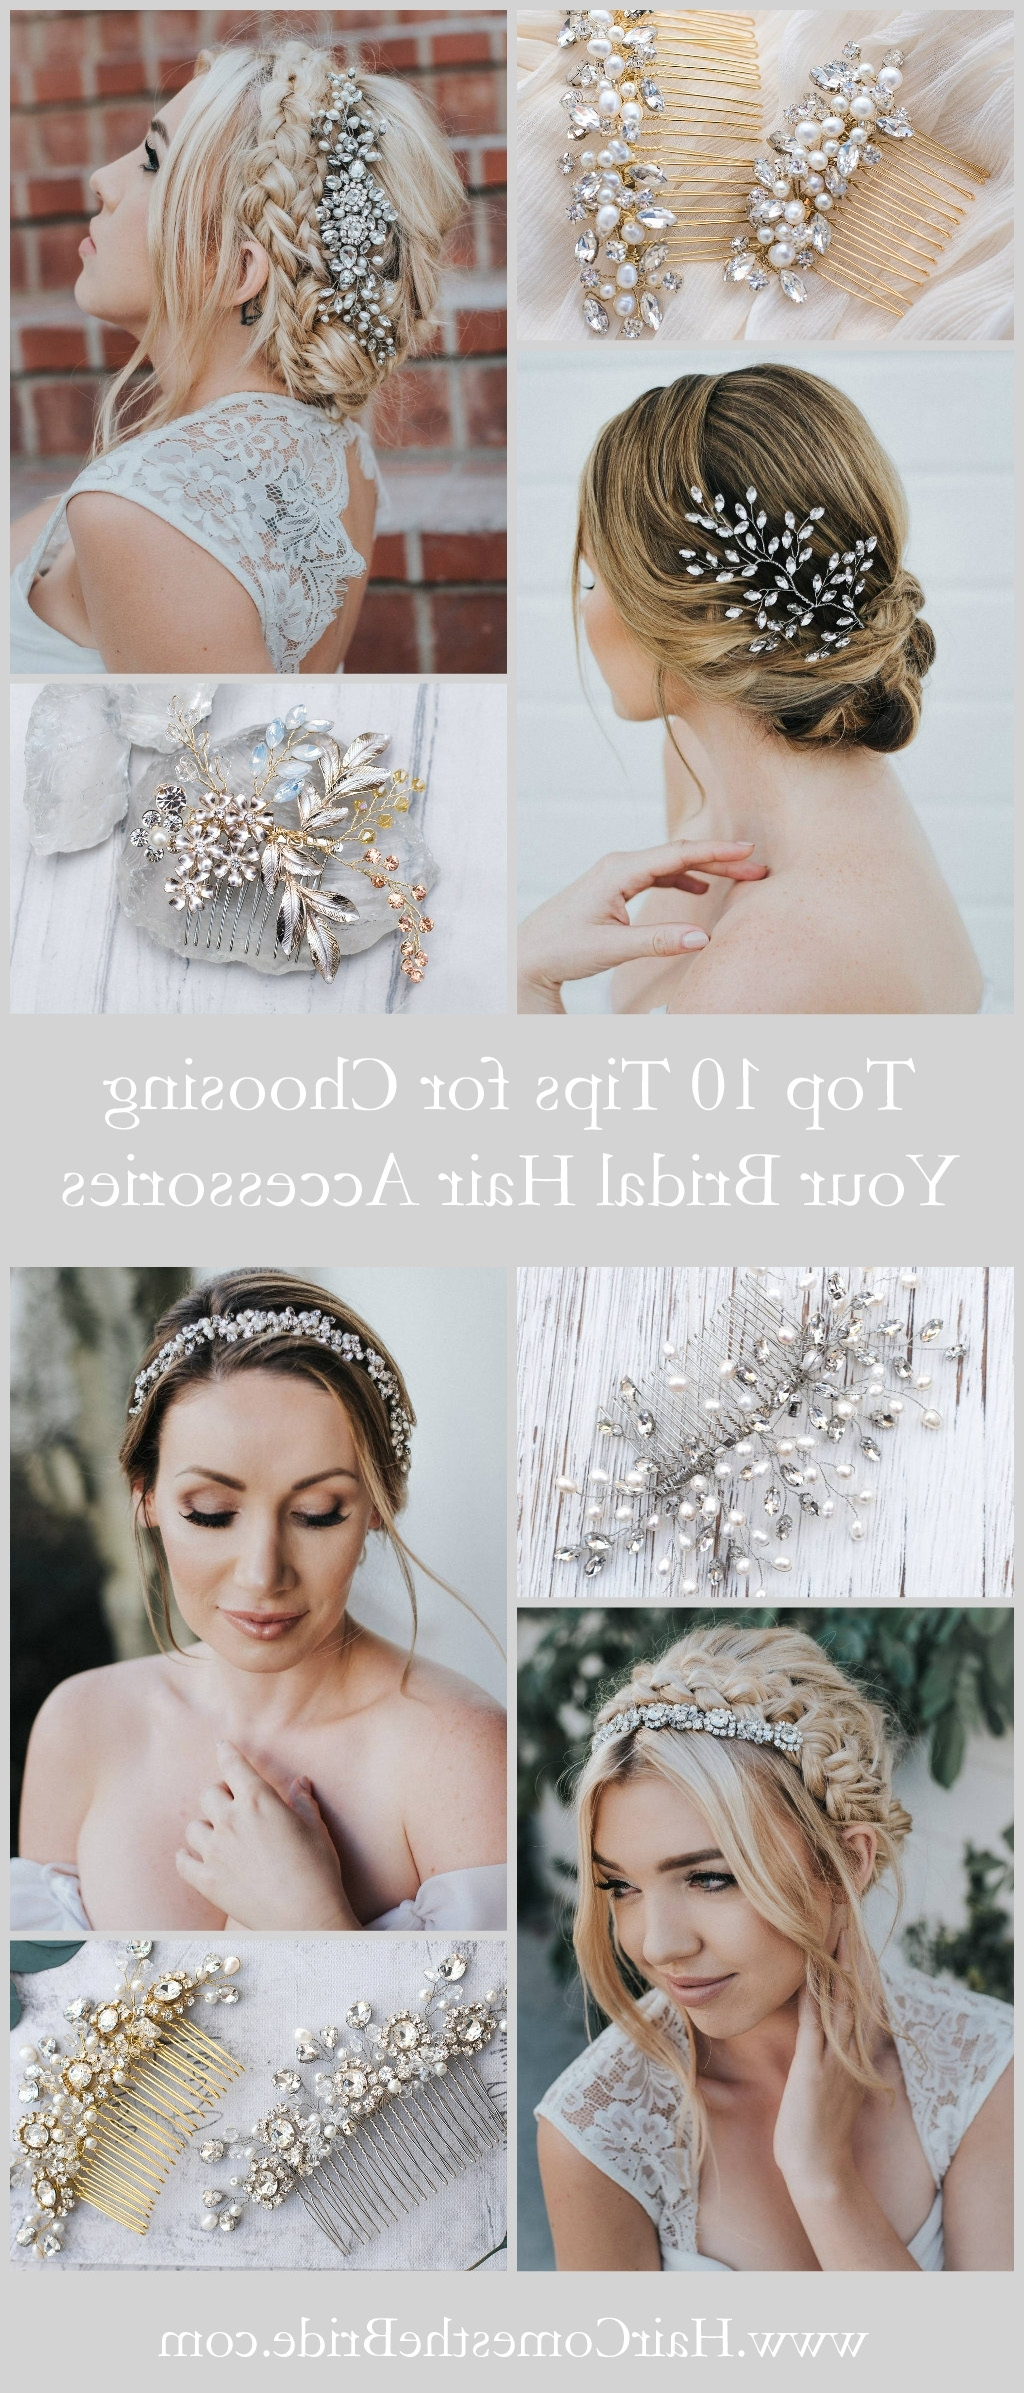 Latest Wedding Hairstyles With Hair Accessories In Top 10 Tips For Choosing Your Bridal Hair Accessories – Hair Comes (View 5 of 15)